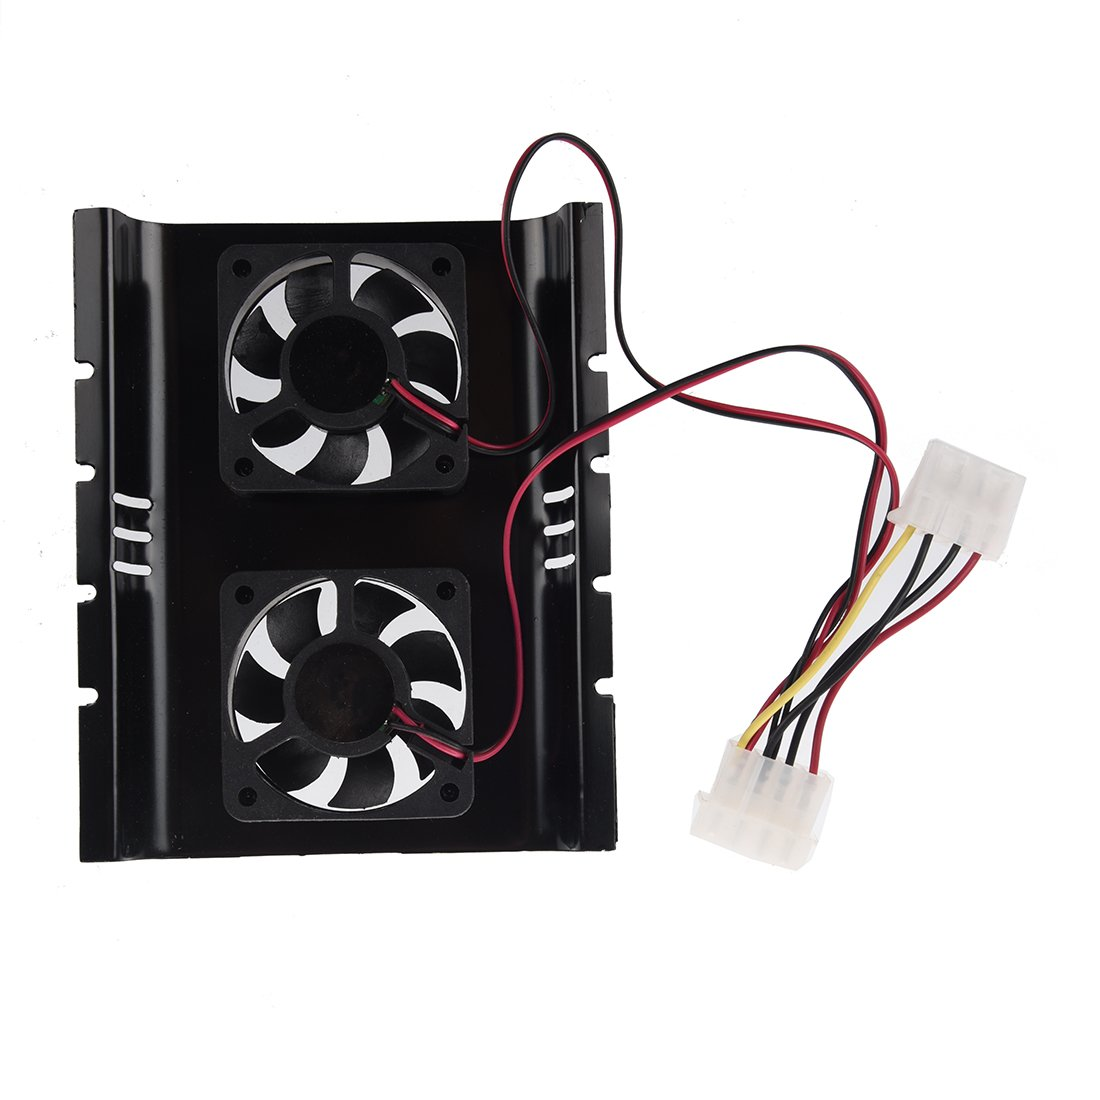 SODIAL(R) New Black 3.5 SATA IDE Hard Disk Drive HDD 2 Fan Cooler for PC by SODIAL (Image #2)